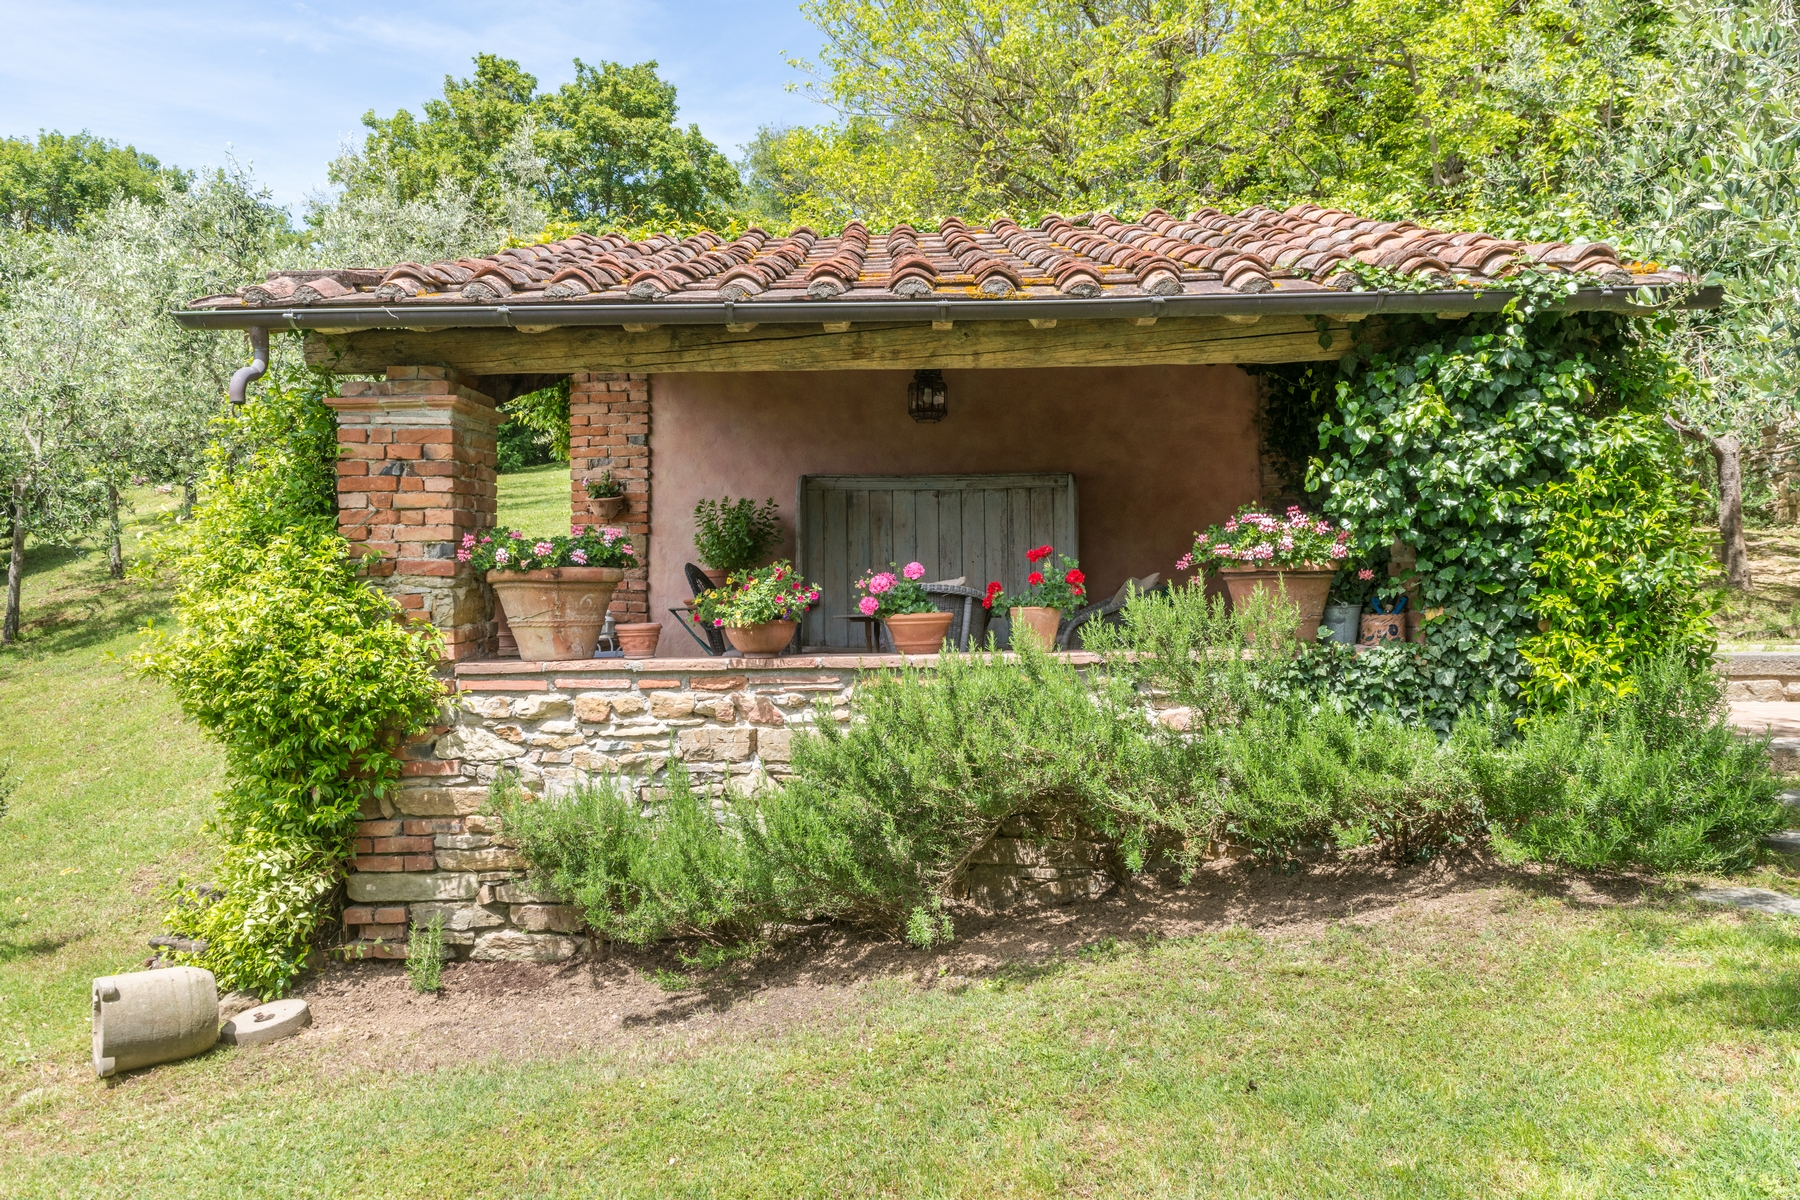 Additional photo for property listing at Beautiful renovated farmhouse with outbuildings Via Carniano Barberino Di Mugello, Florence 50031 Italia